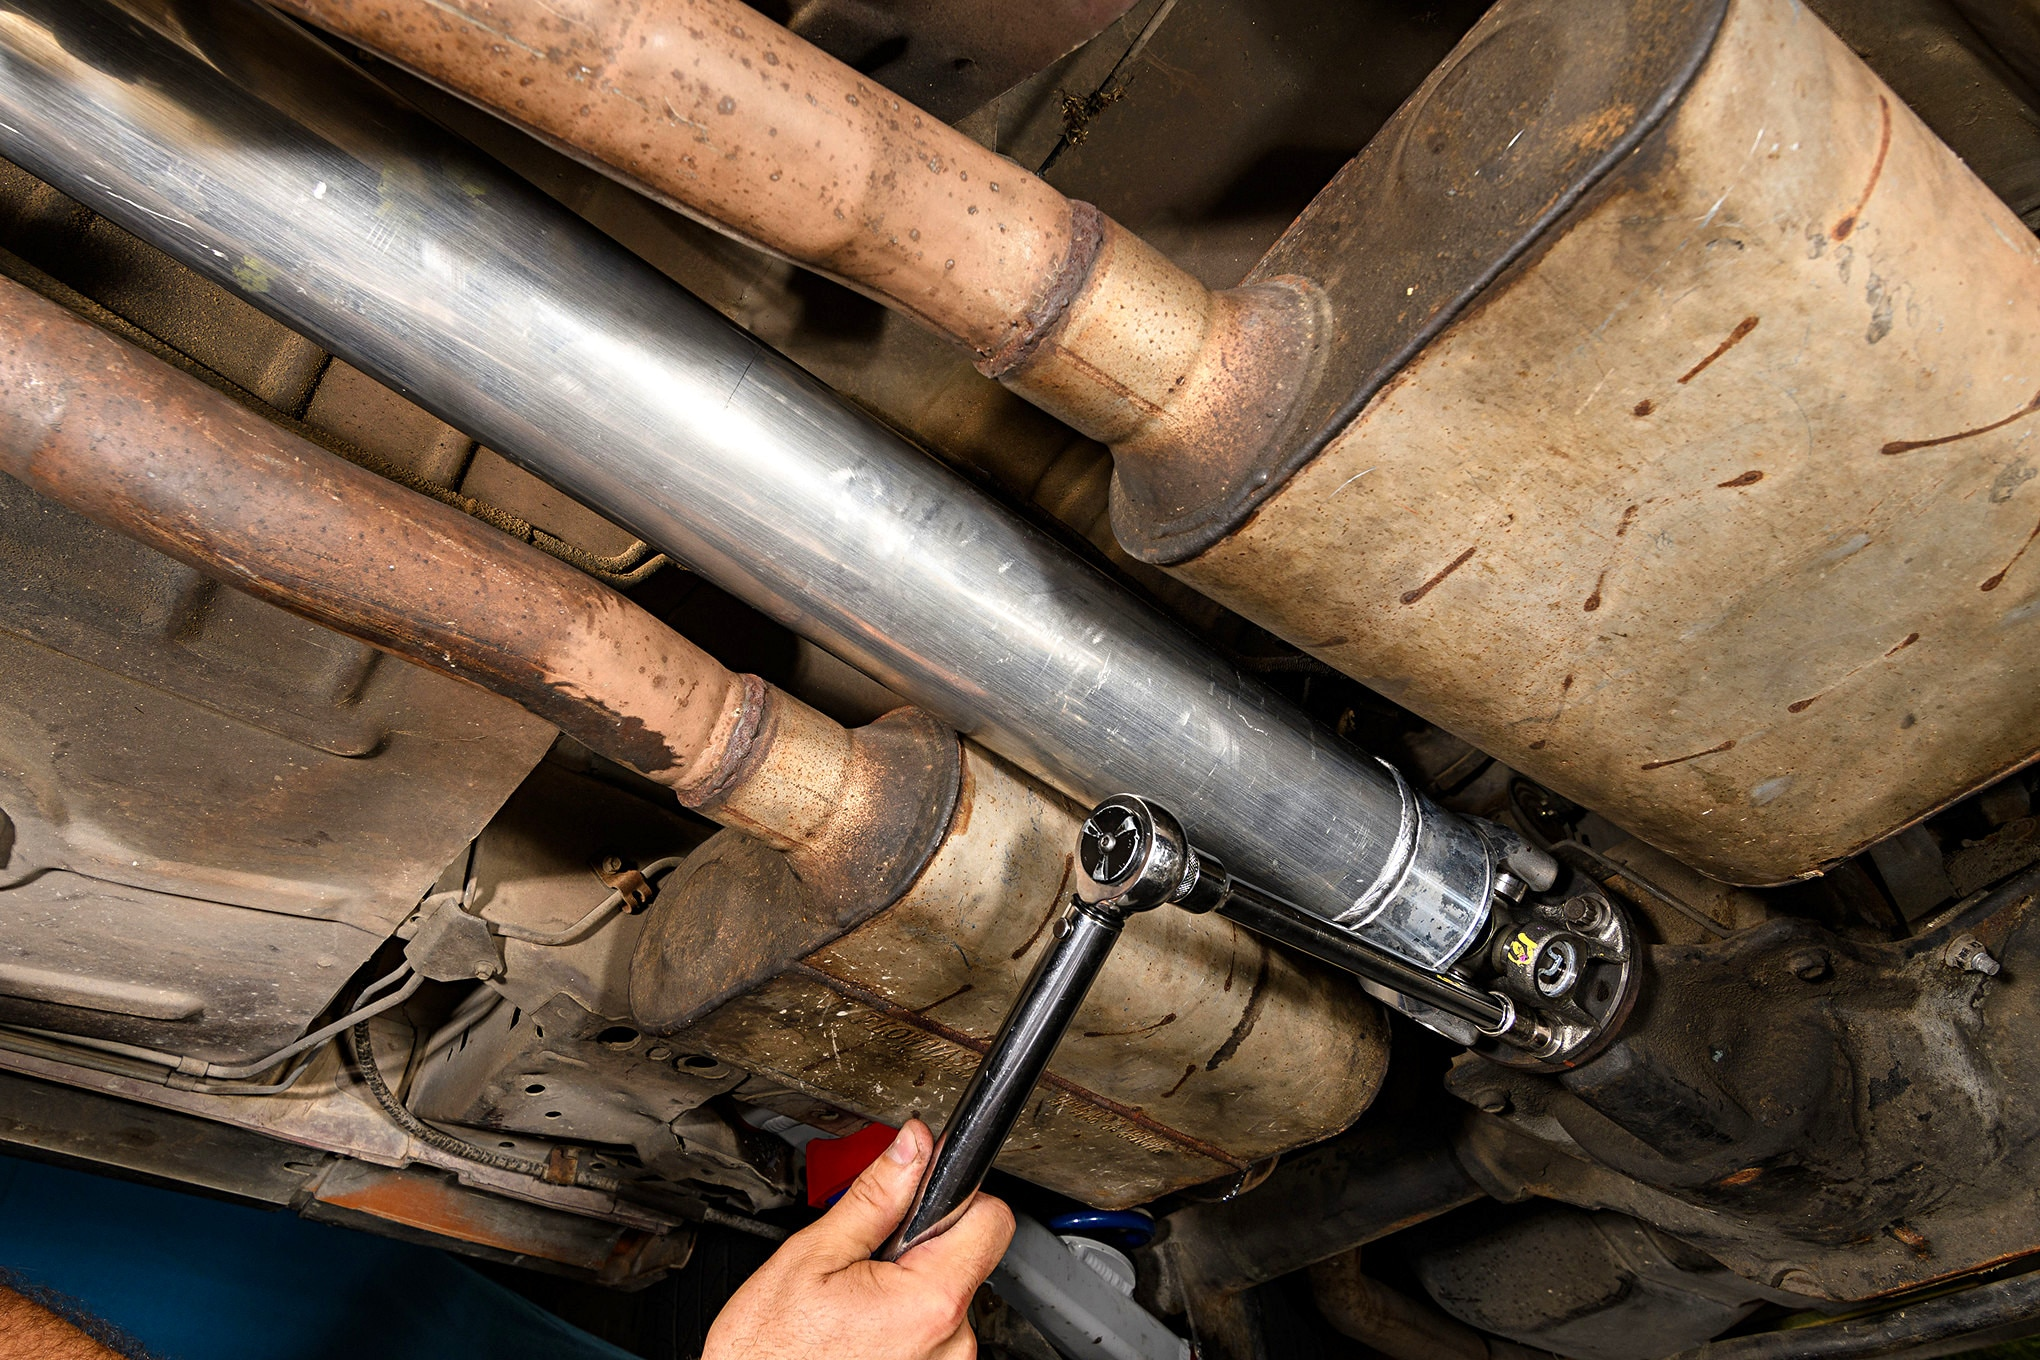 015 Mustang Ford Performance Parts Aluminum Driveshaft